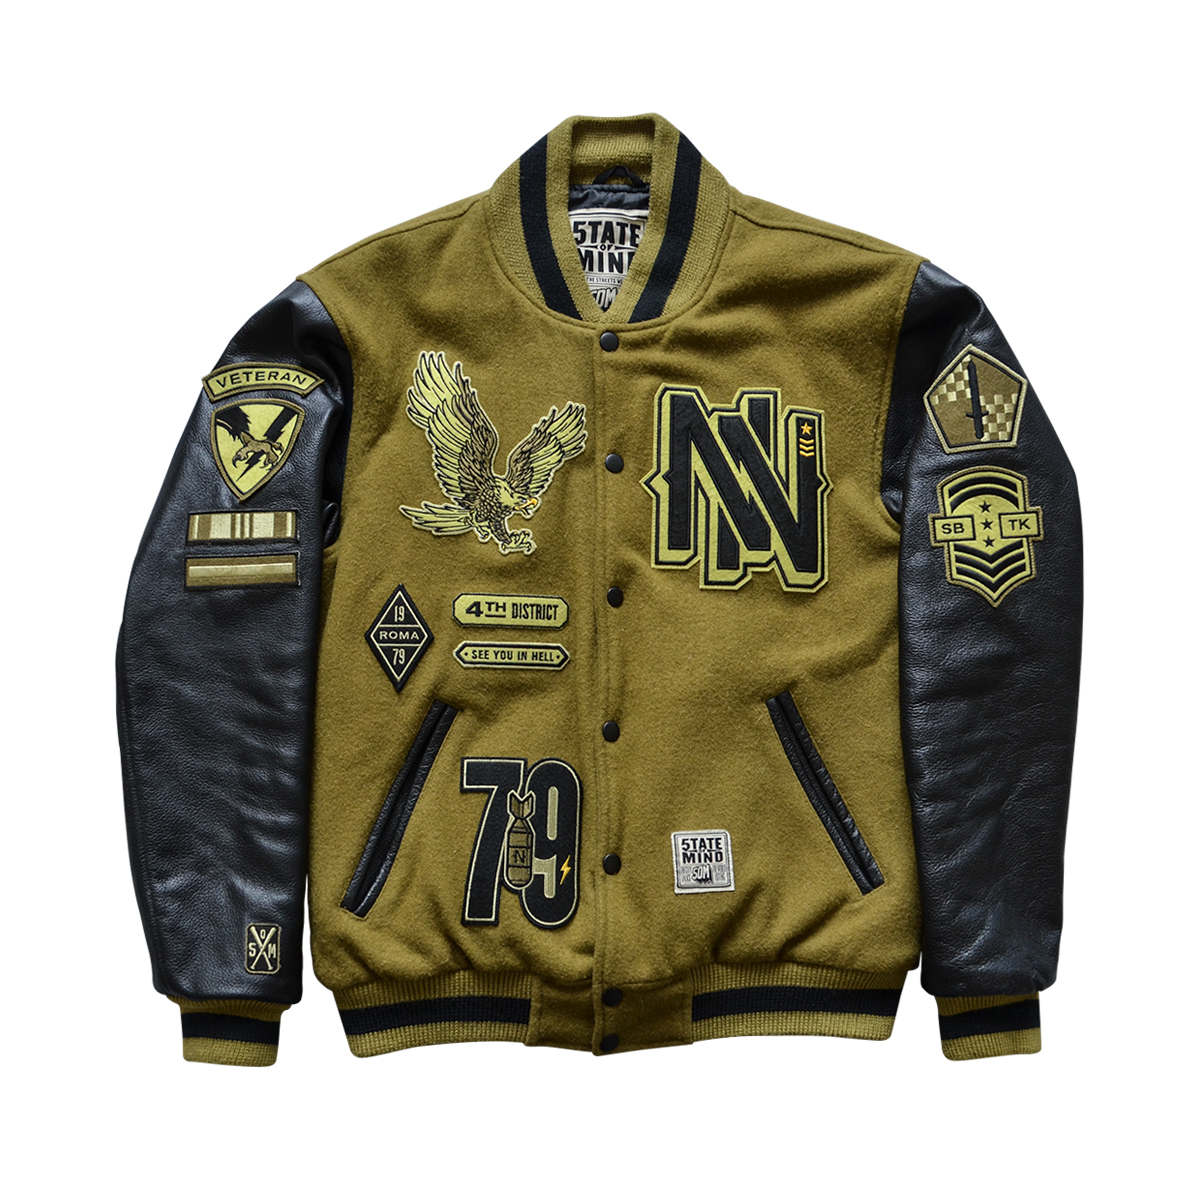 timeless design 25d71 9aa07 5TATE OF MIND x NOYZ NARCOS Varsity Jacket on Behance